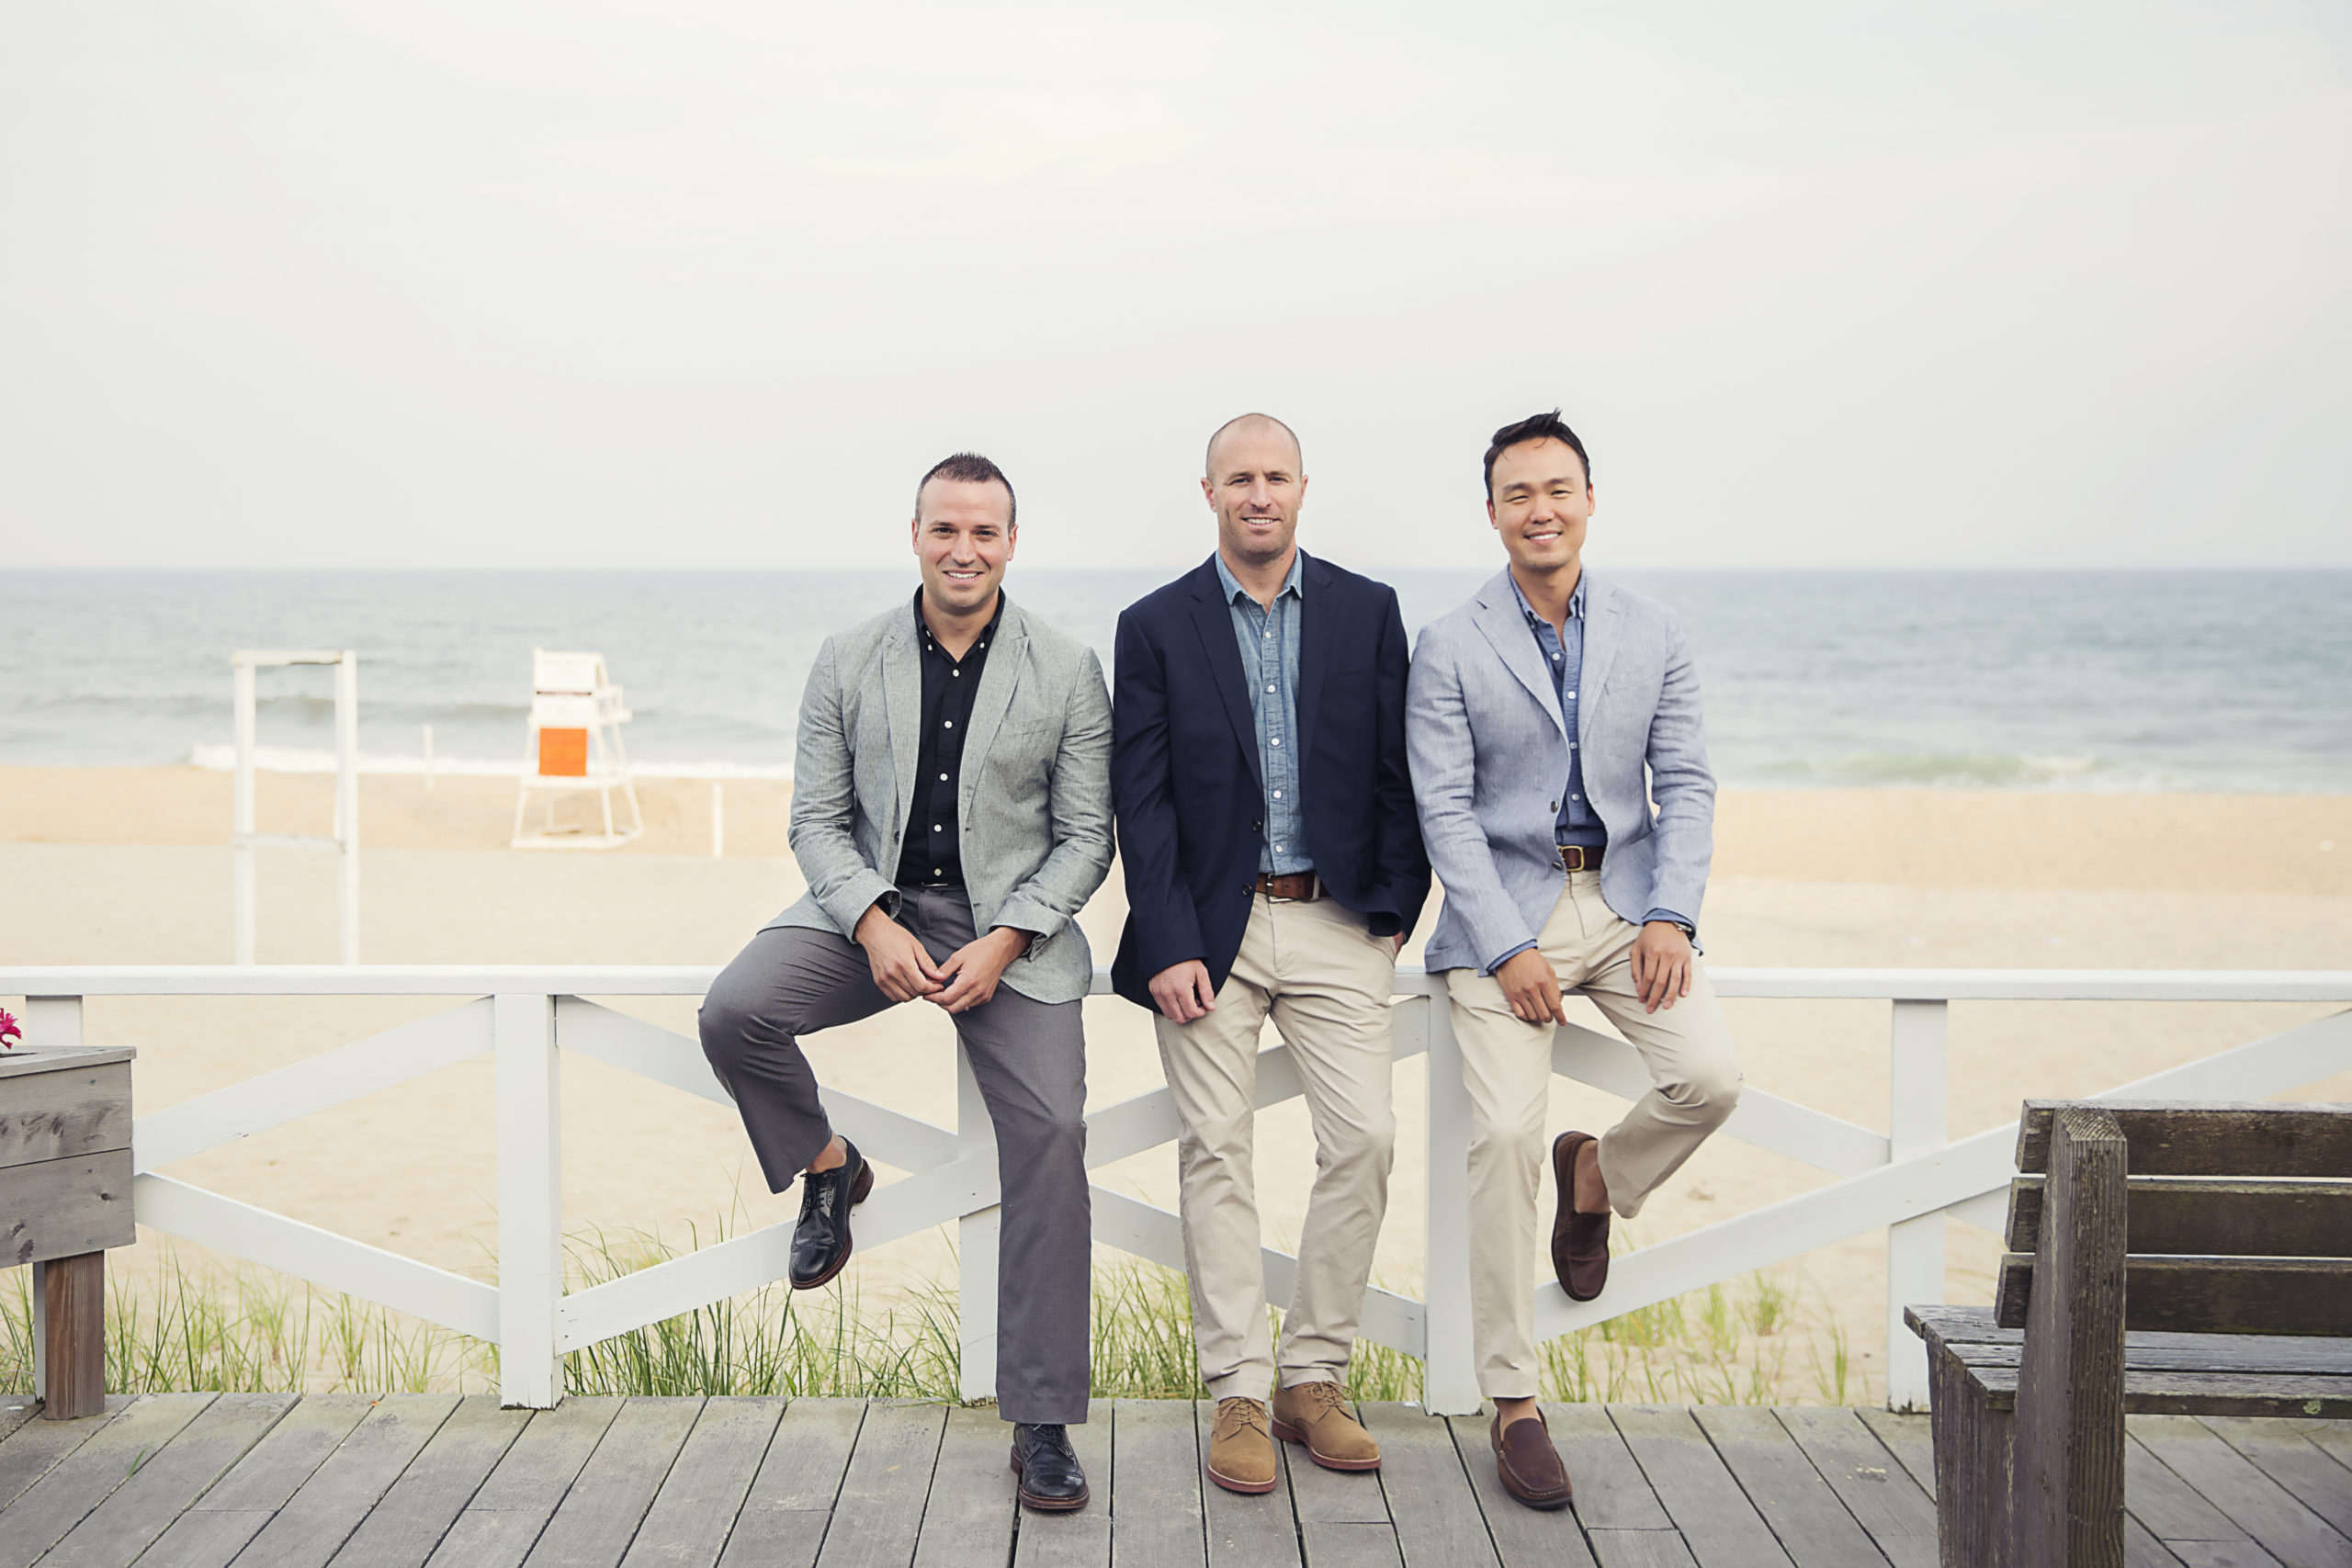 The Atlantic Team's Justin Agnello, Hara Kang and James Keogh.